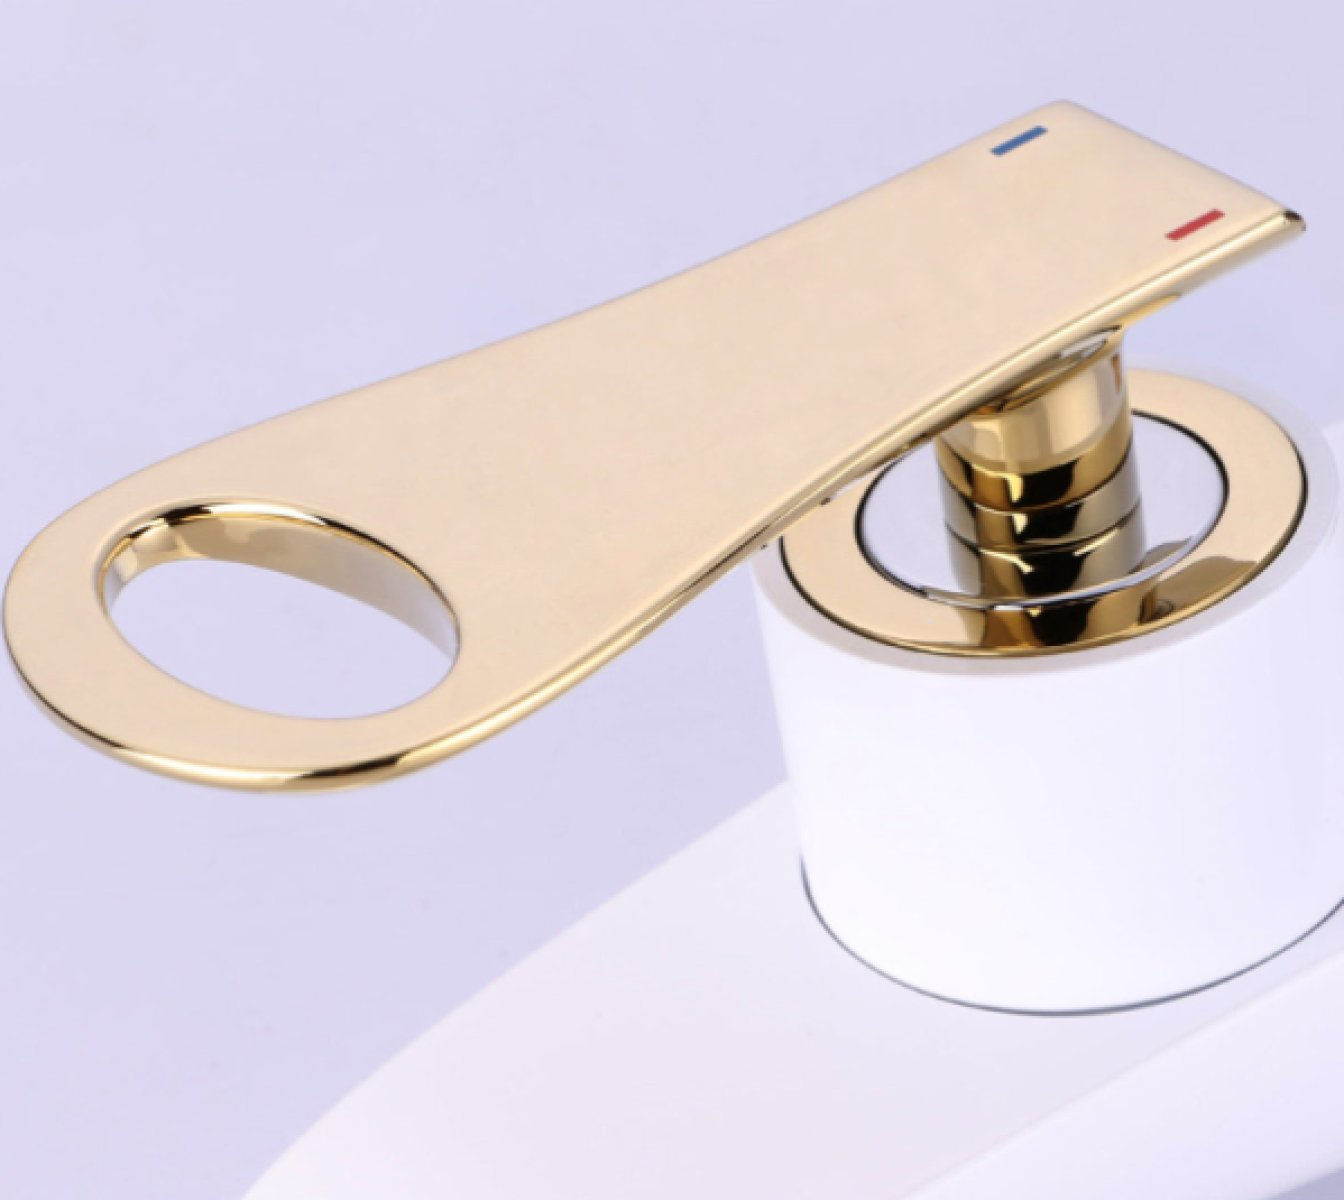 LDONGSH Creative Design Faucet Home Hotel Personality Washbasin Copper Hot And Cold High Style Faucet Bathroom Simple,White by LDONGSH (Image #3)